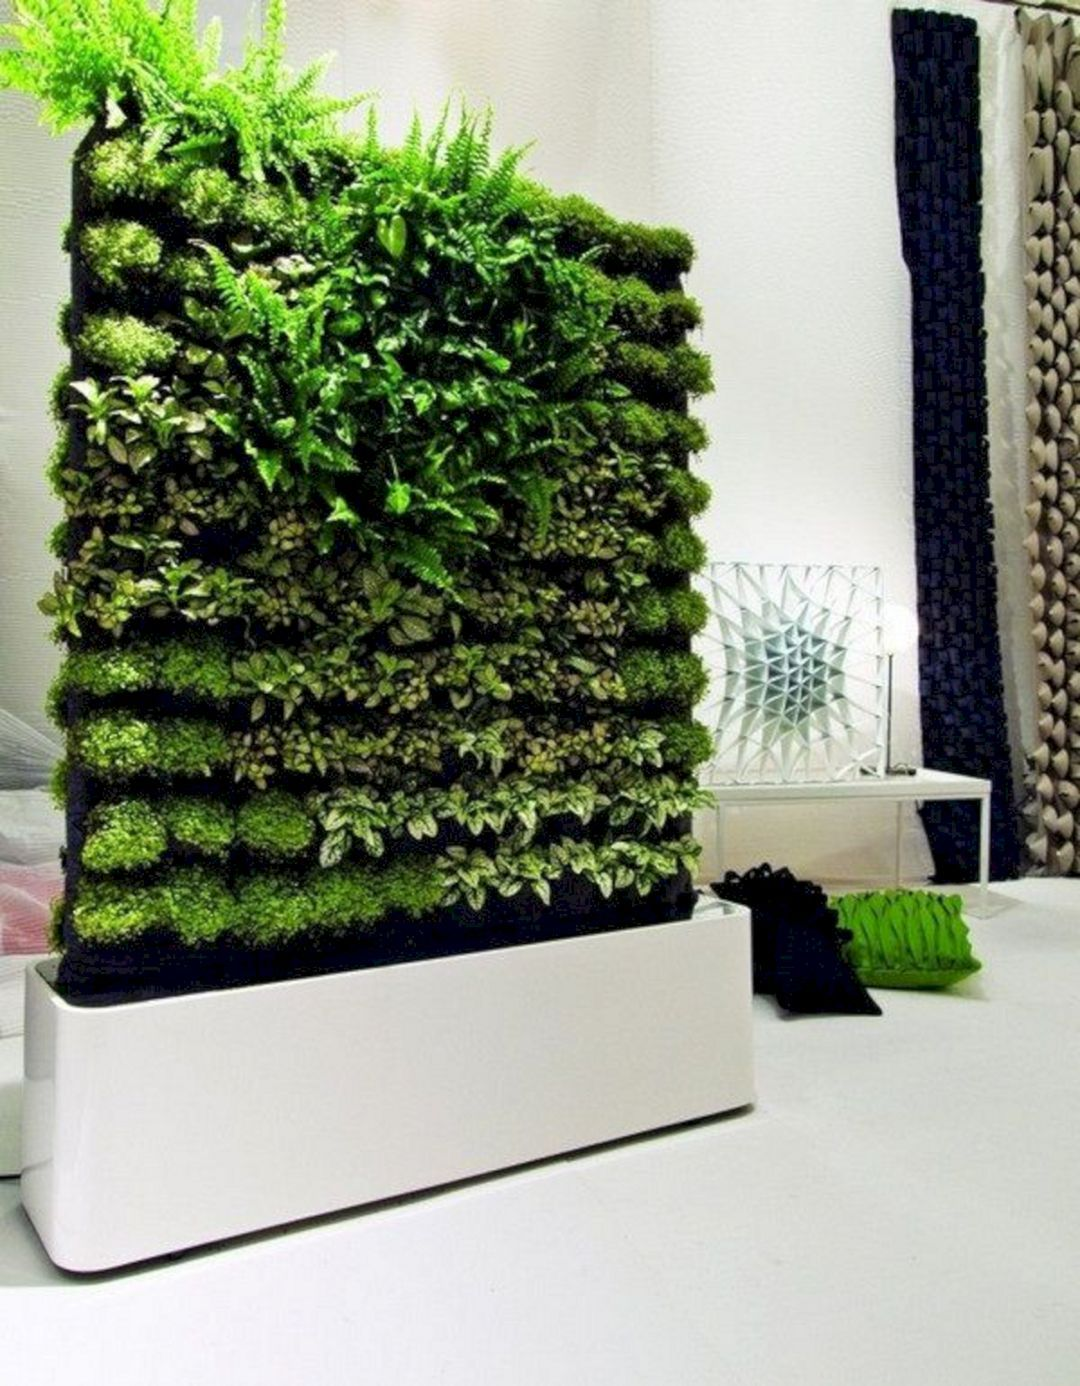 22 Awesome Indoor Hydroponic Wall Garden Design Ideas in